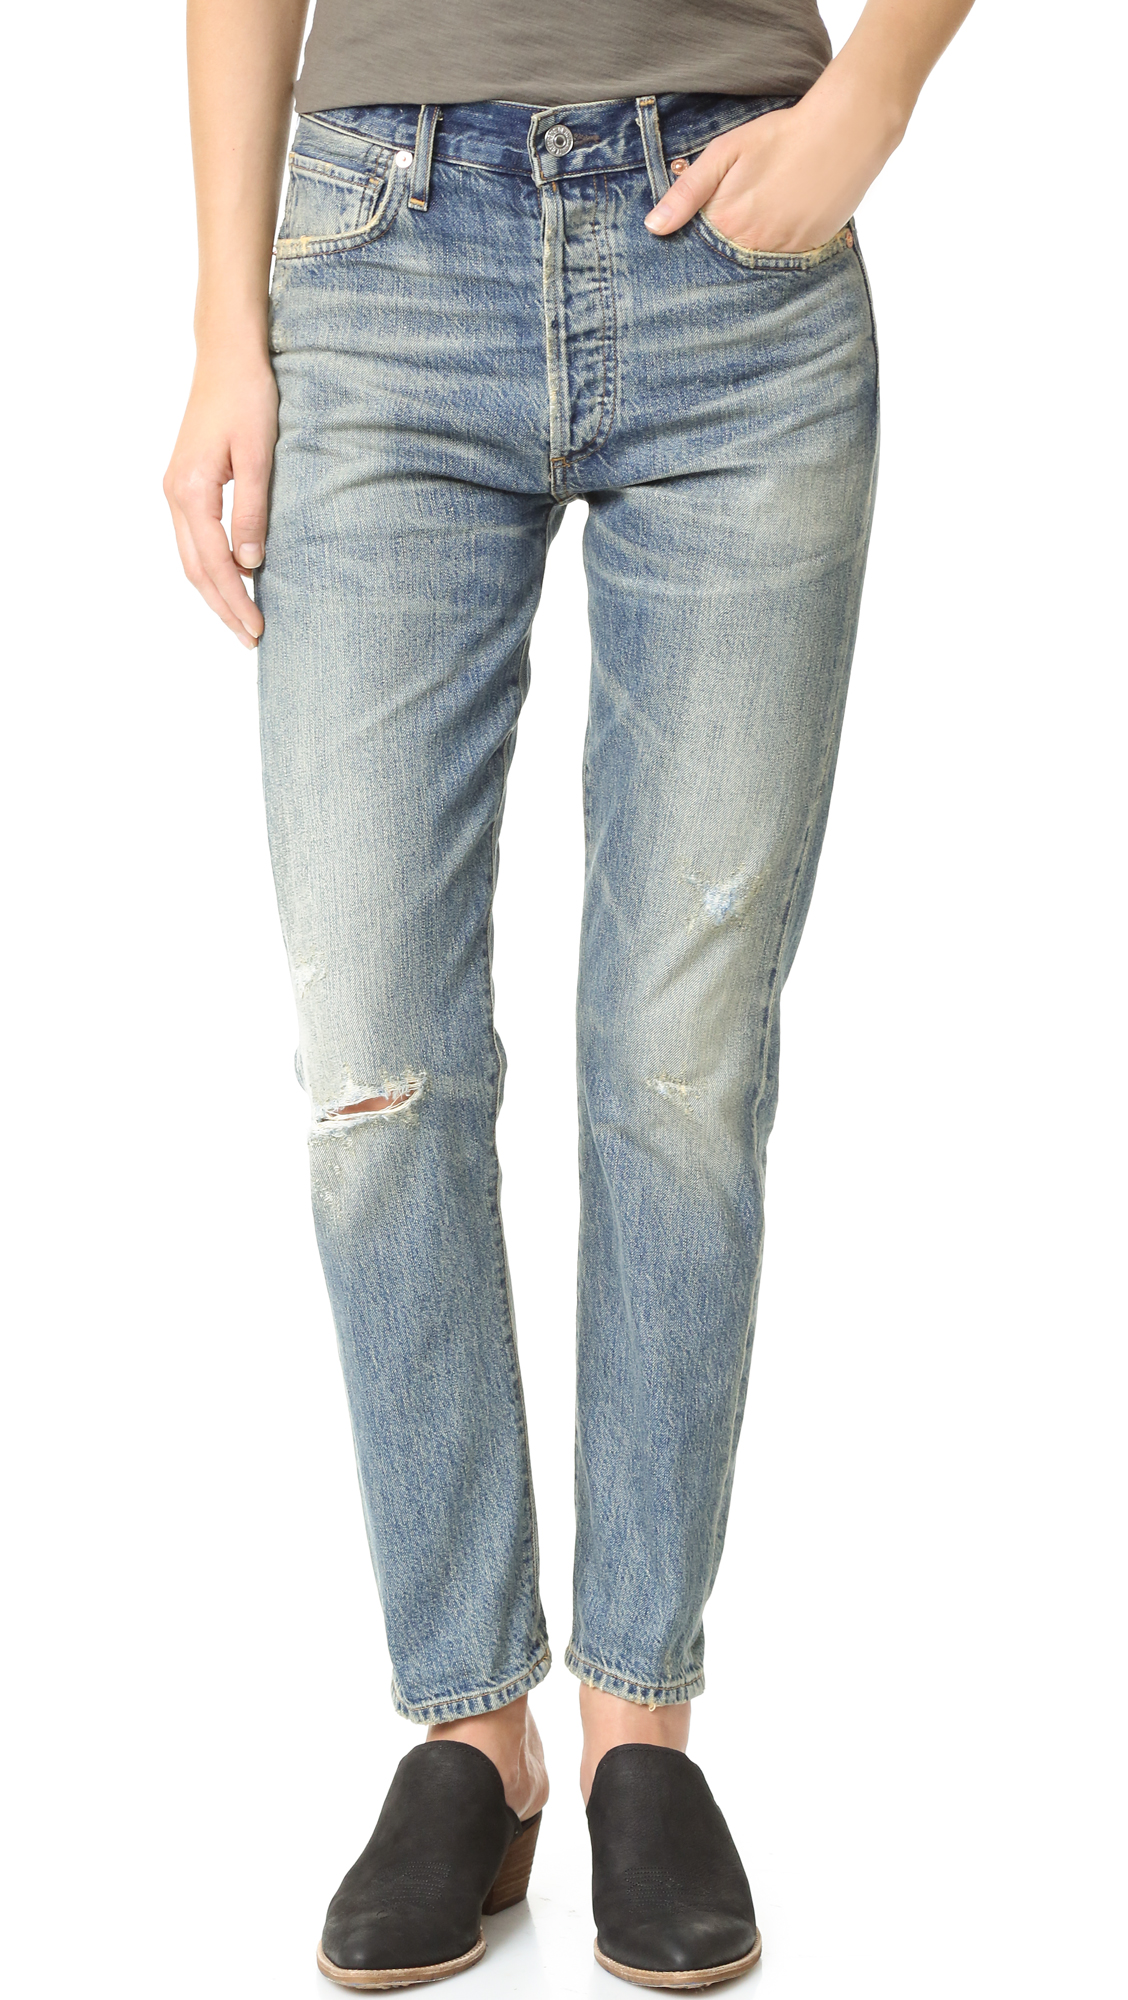 Citizens Of Humanity Liya High Rise Jeans - Greenpoint at Shopbop